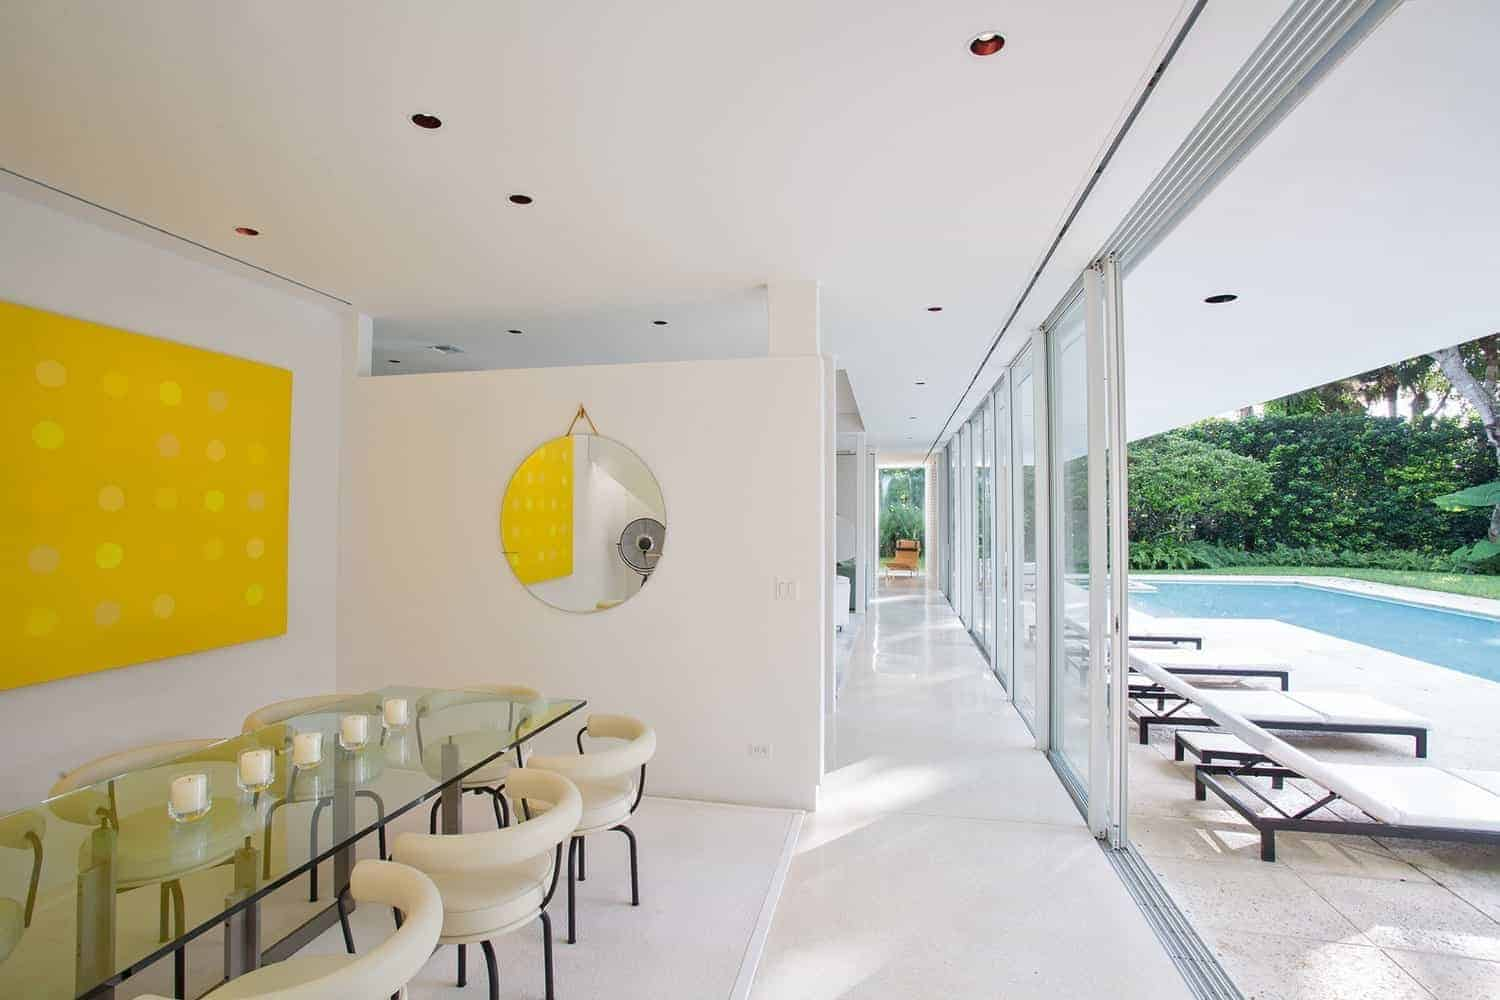 The glass-top rectangular dining table is a perfect match for the sliding glass doors that open to a poolside scenery. This gives a sense that the dining room is bigger that it seems. The addition of the yellow abstract painting complements the beige modern dining chairs.